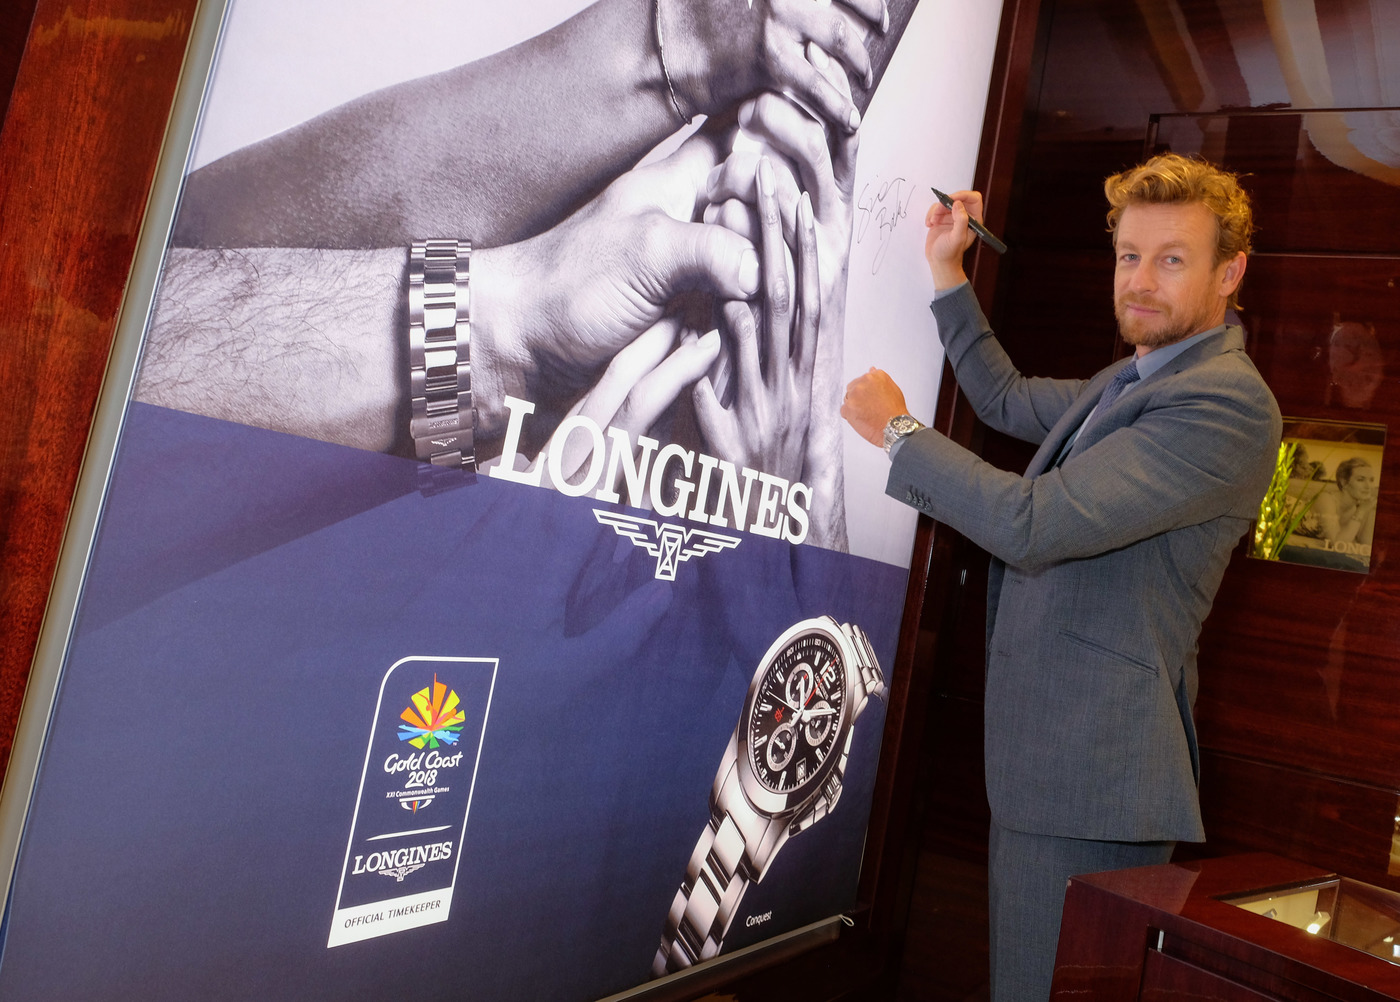 Longines Commonwealth Games Event: Longines Ambassador of Elegance Simon Baker welcomed the 2018 Commonwealth Games Queen's Baton in the Longines Boutique in London 2